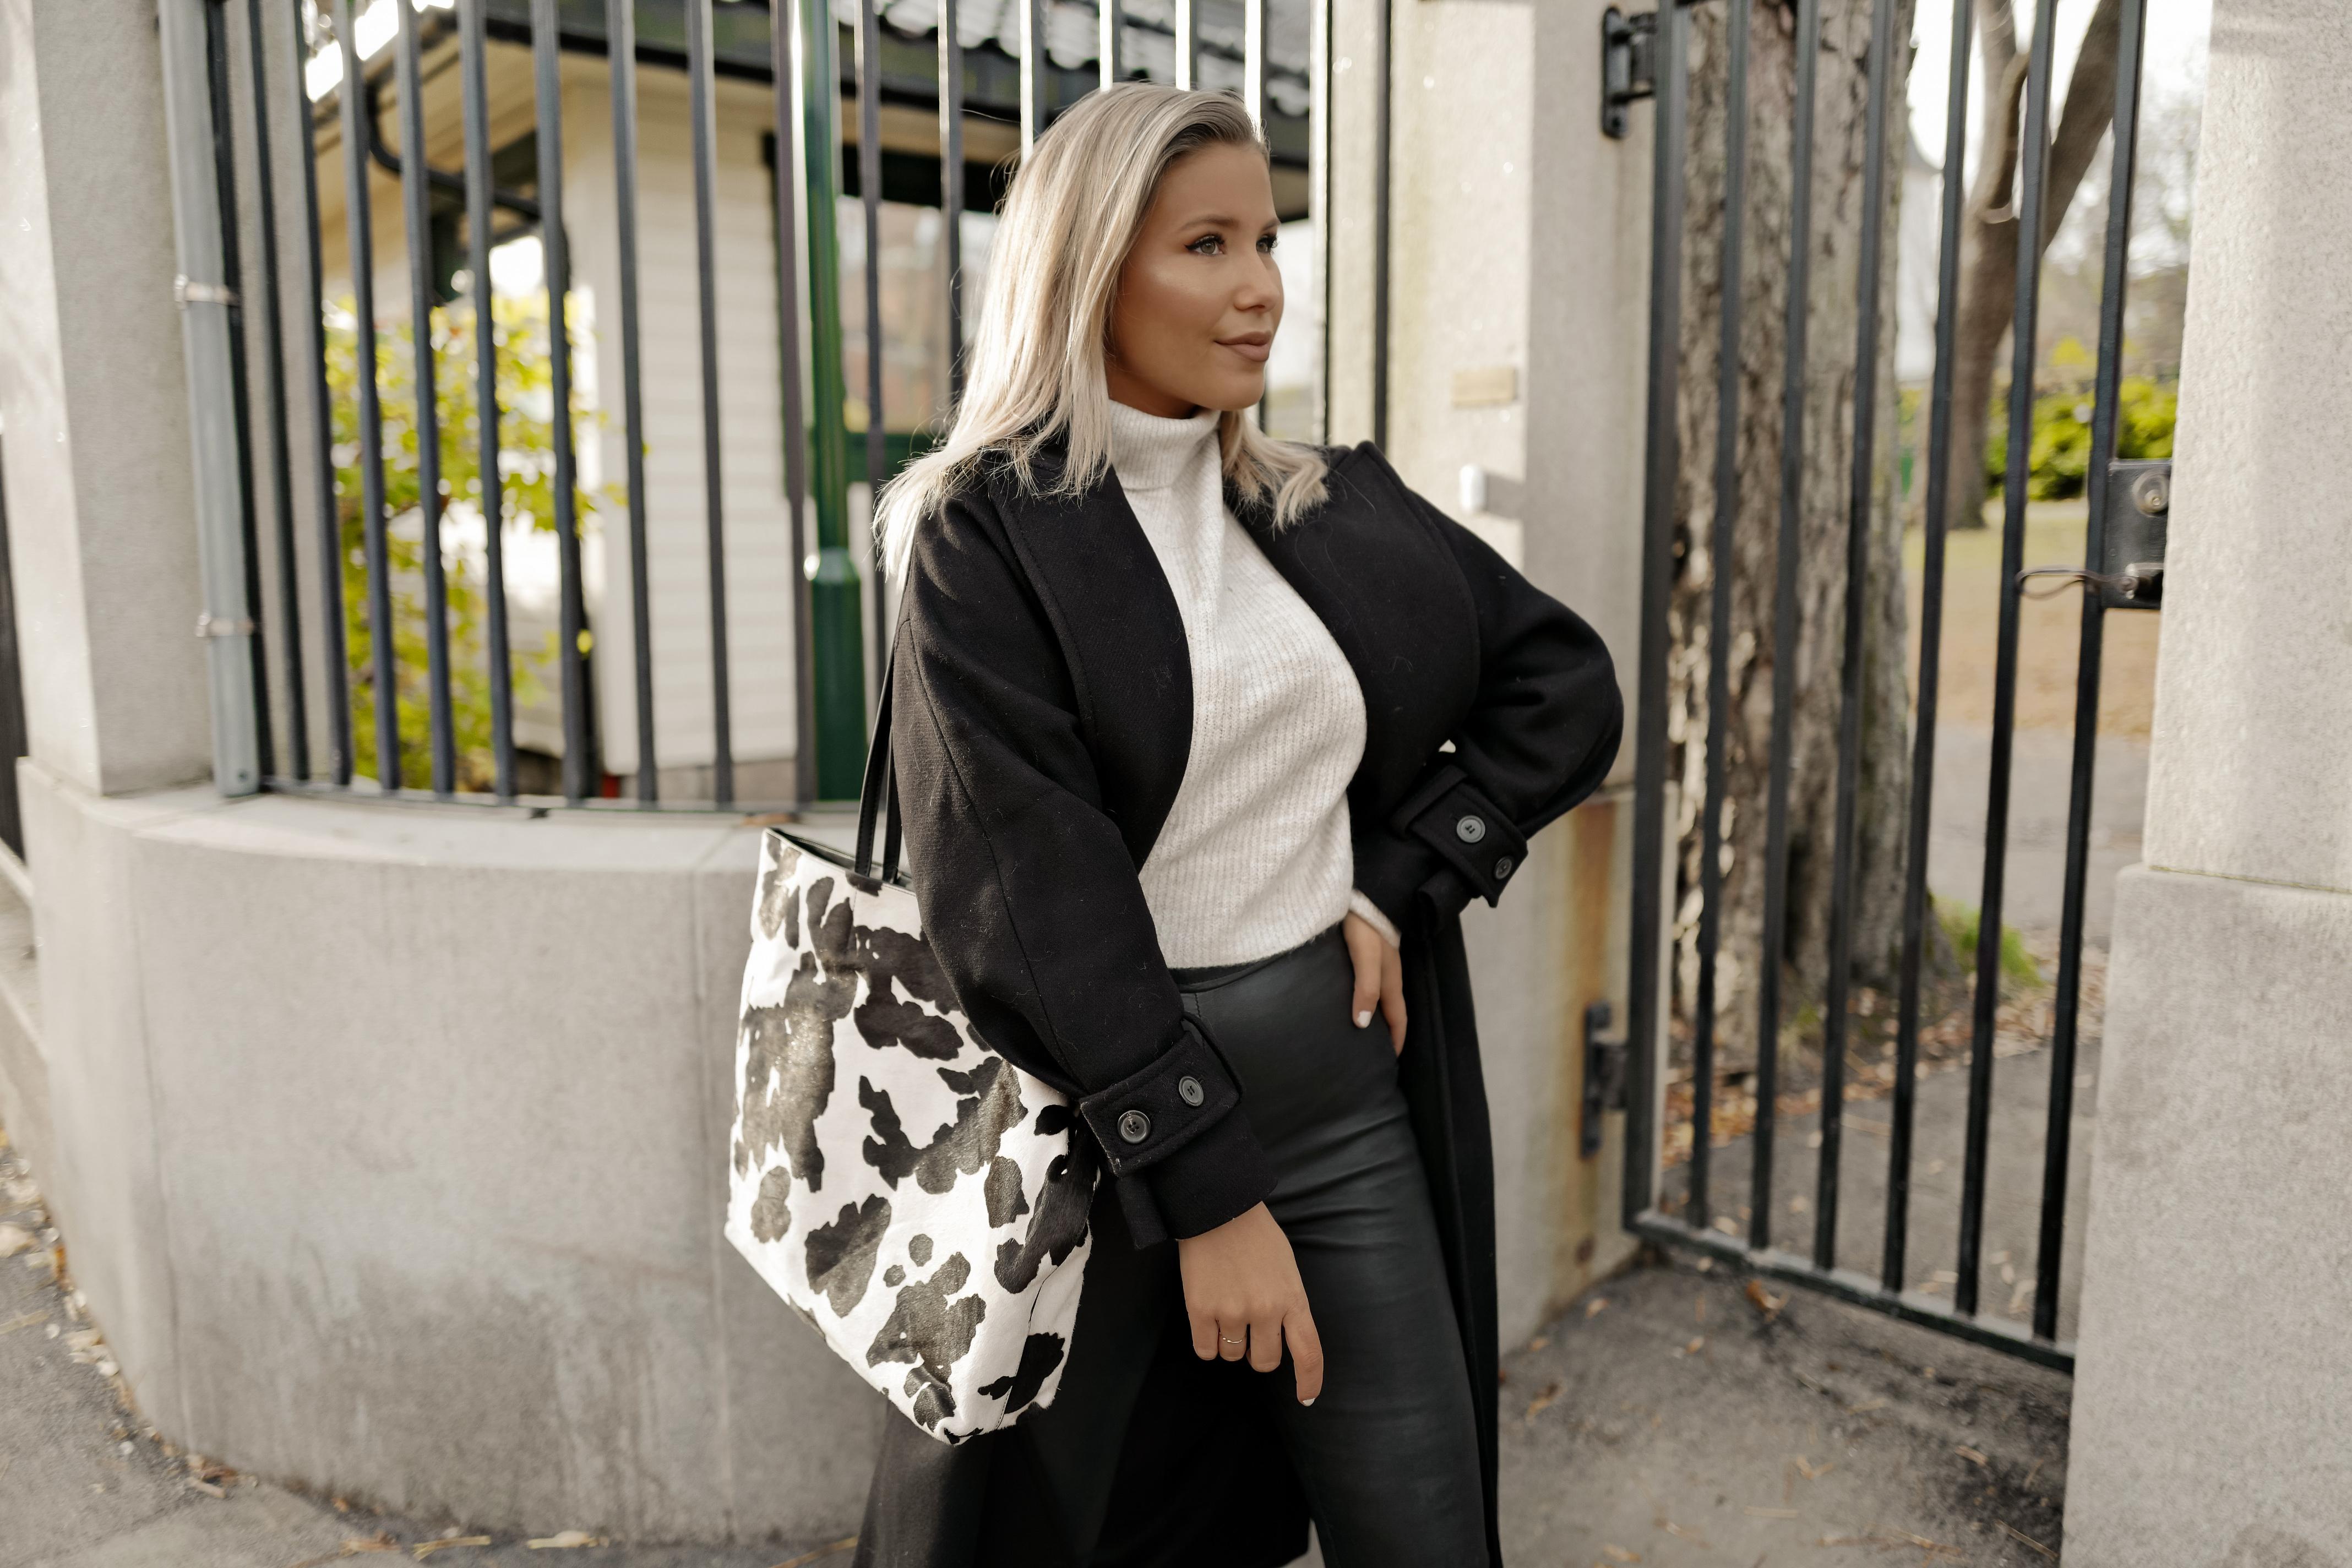 Andrea Badendyck – TODAYS OUTFIT